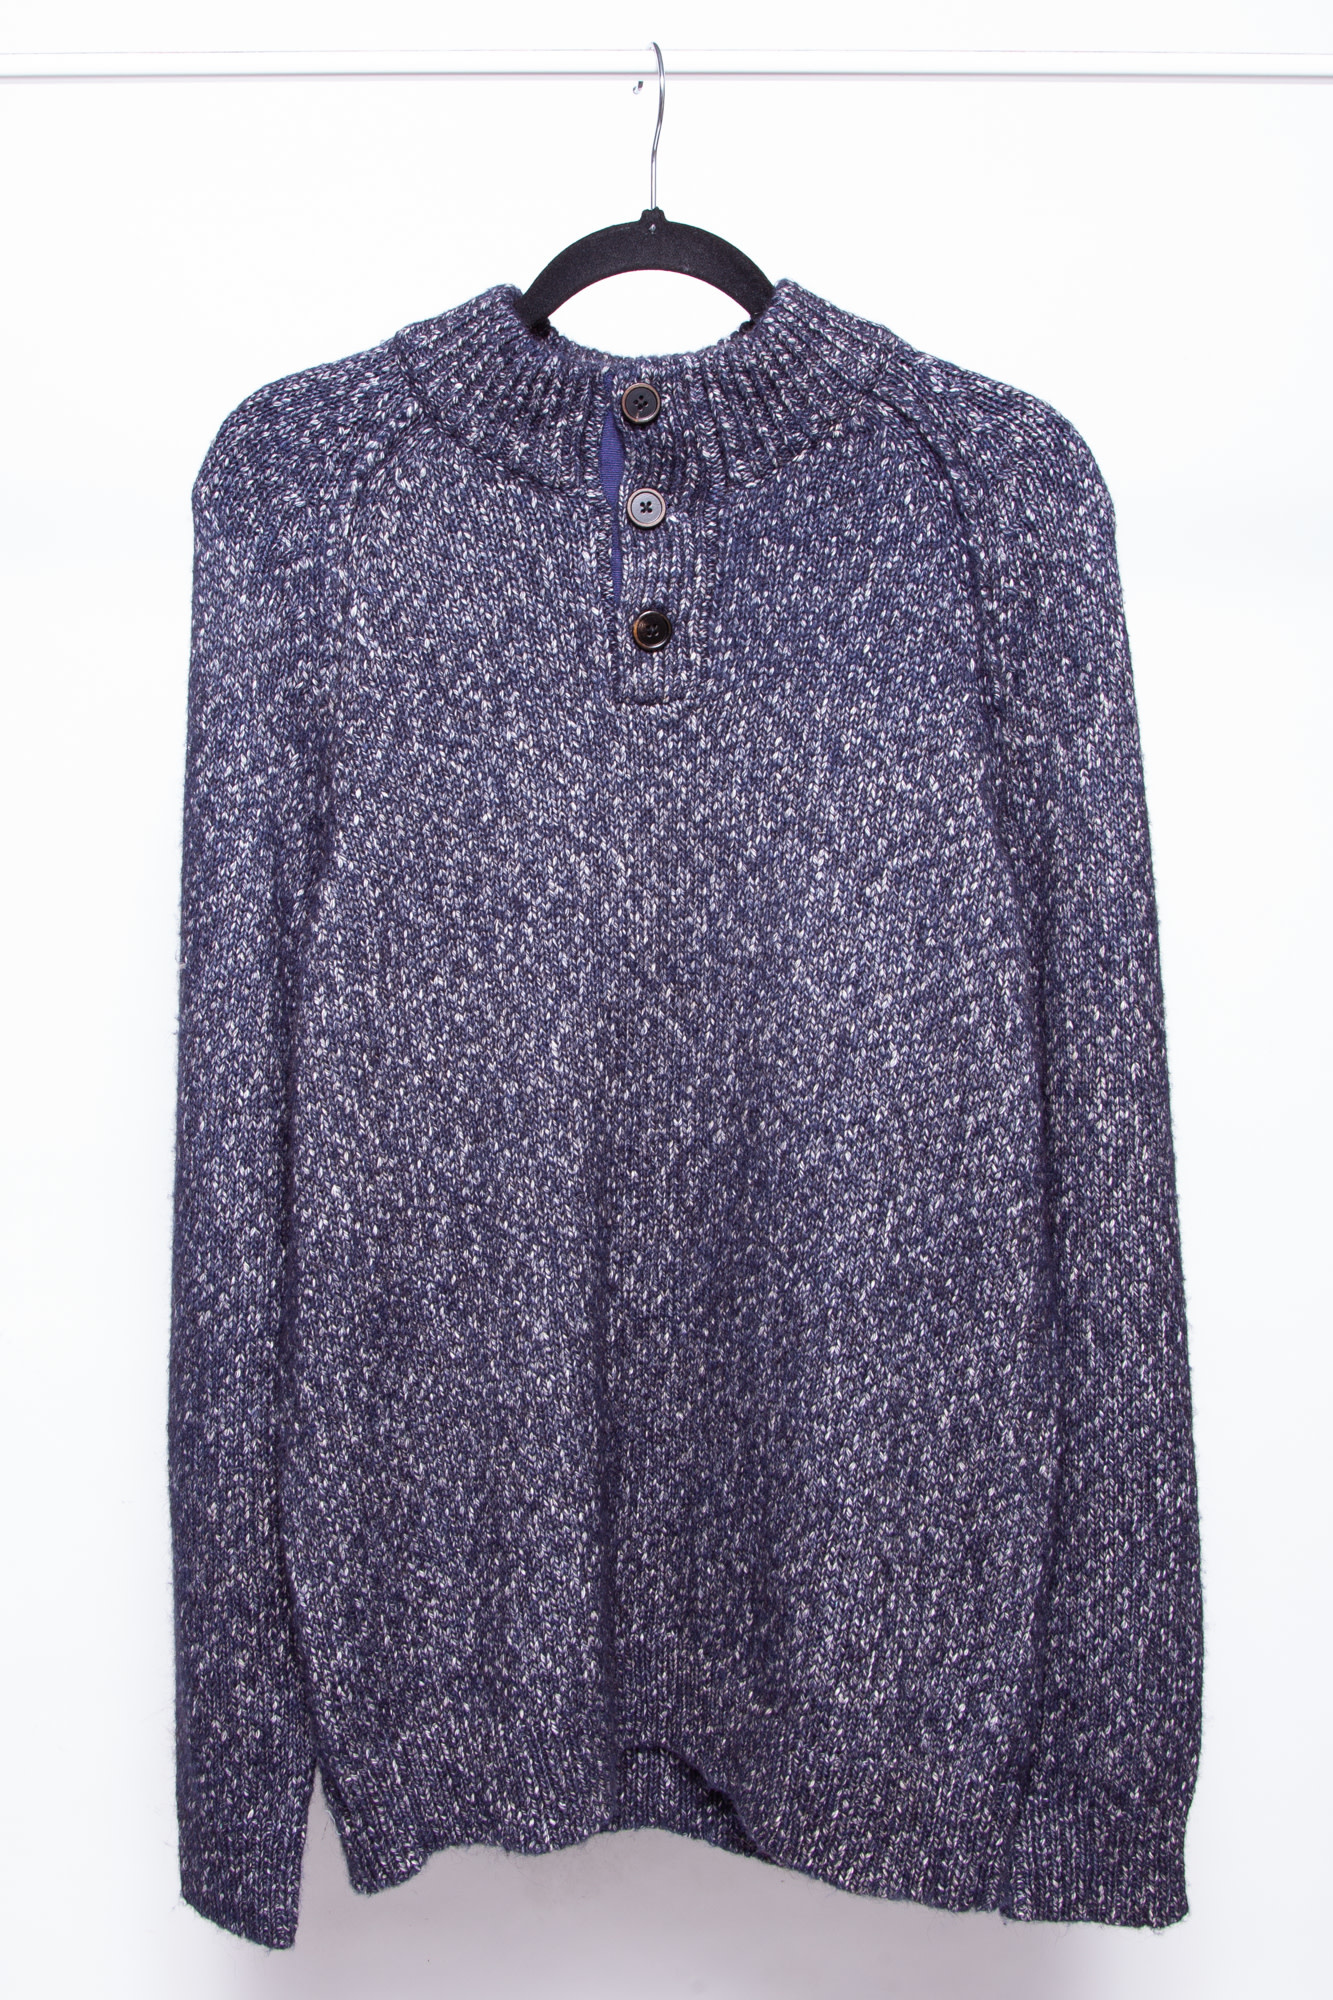 Rails BLUE AND WHITE KNITTED SWEATER - NEW - FOR MEN